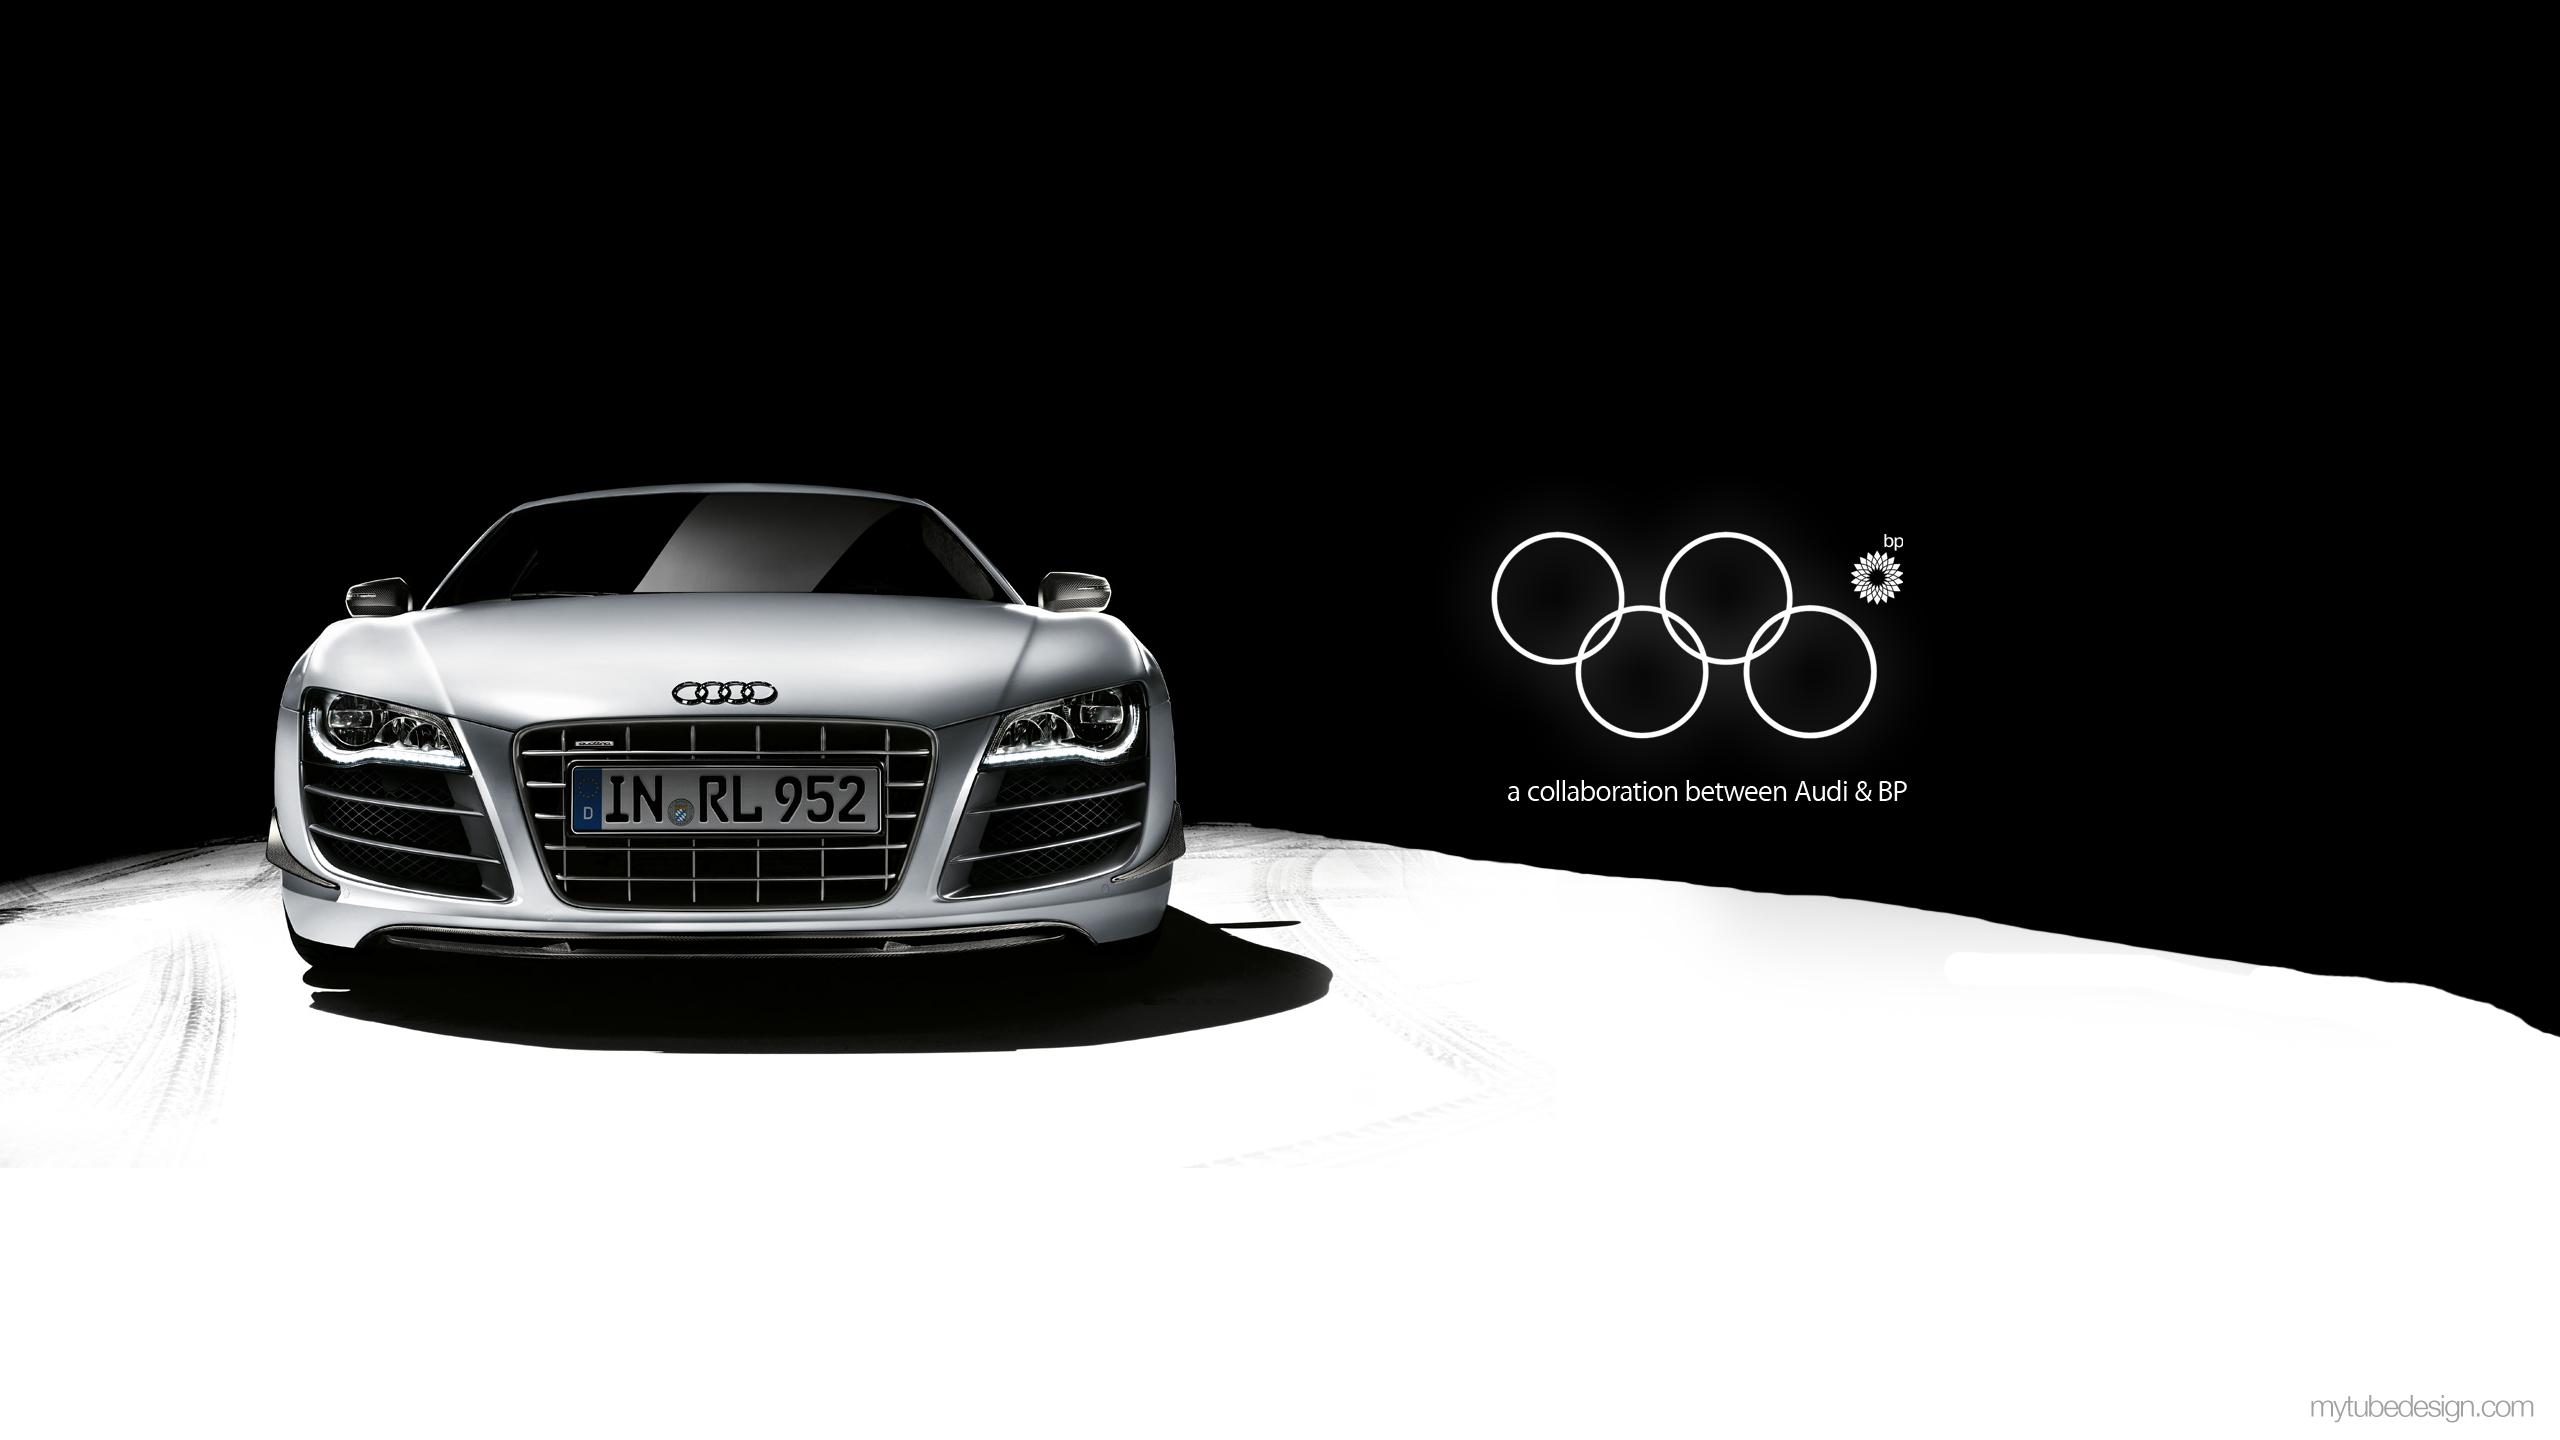 audi wallpapers page hd wallpapers 2560x1440